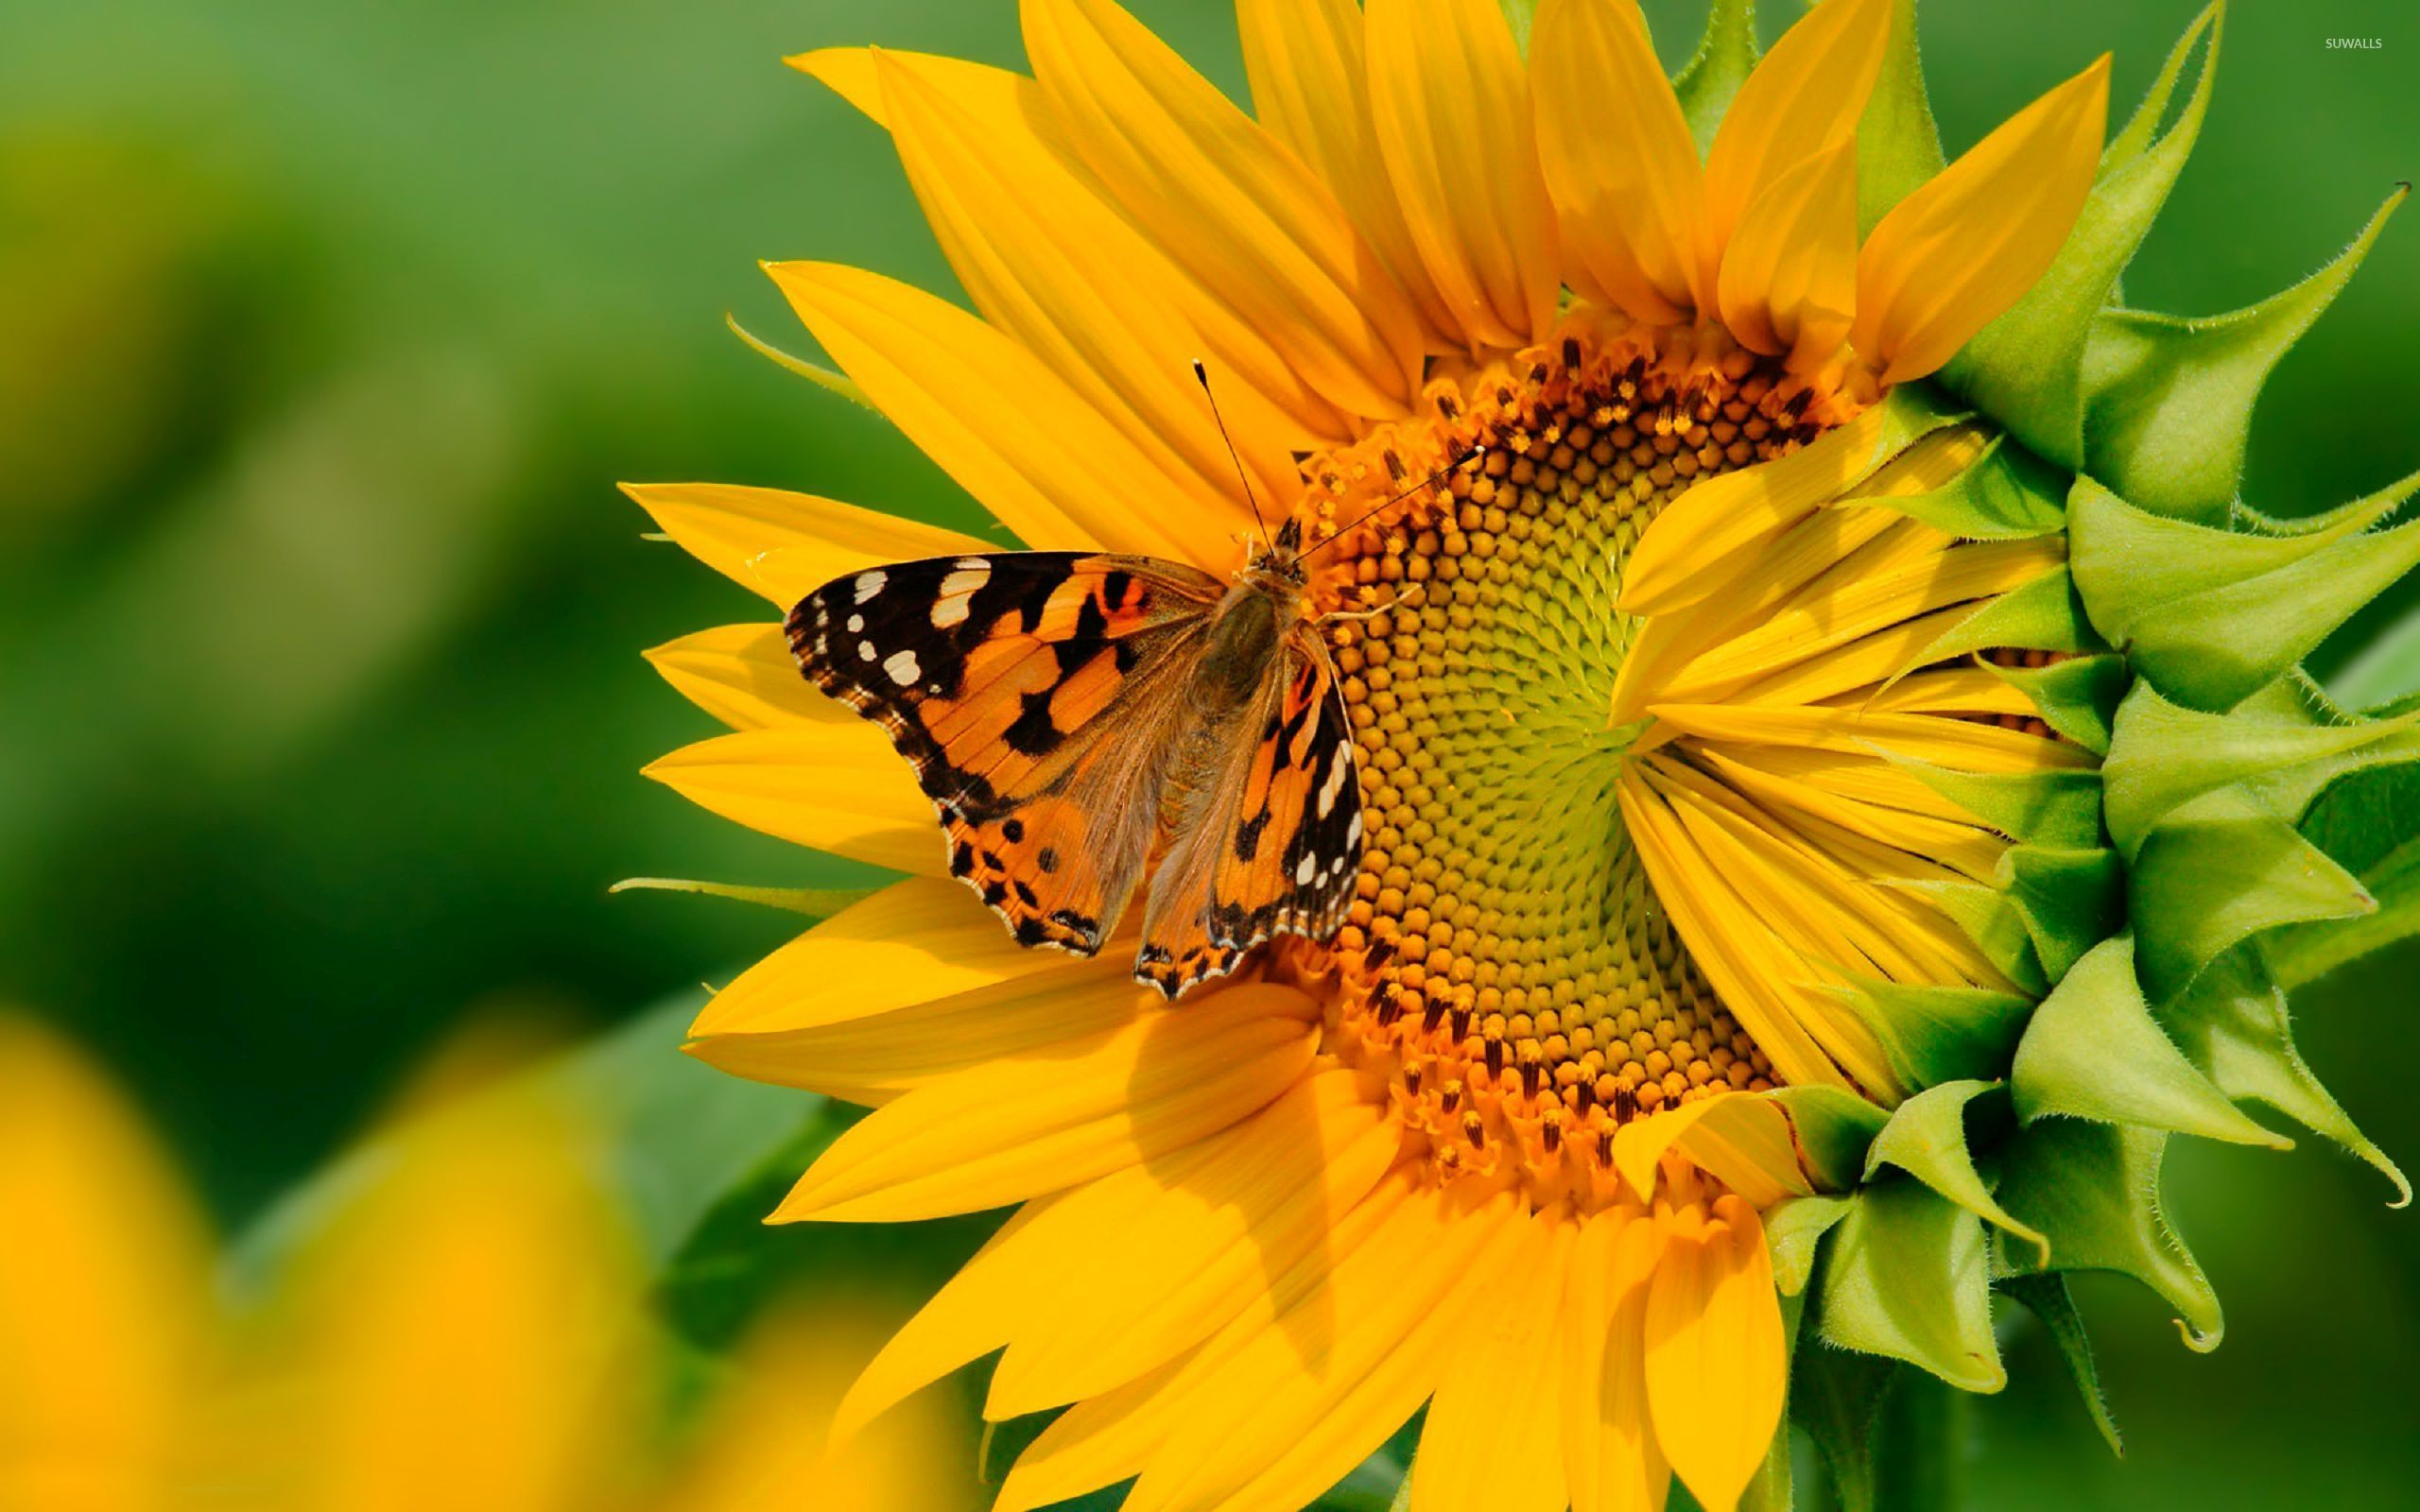 Butterfly on the sunflower wallpaper Animal wallpapers 54277